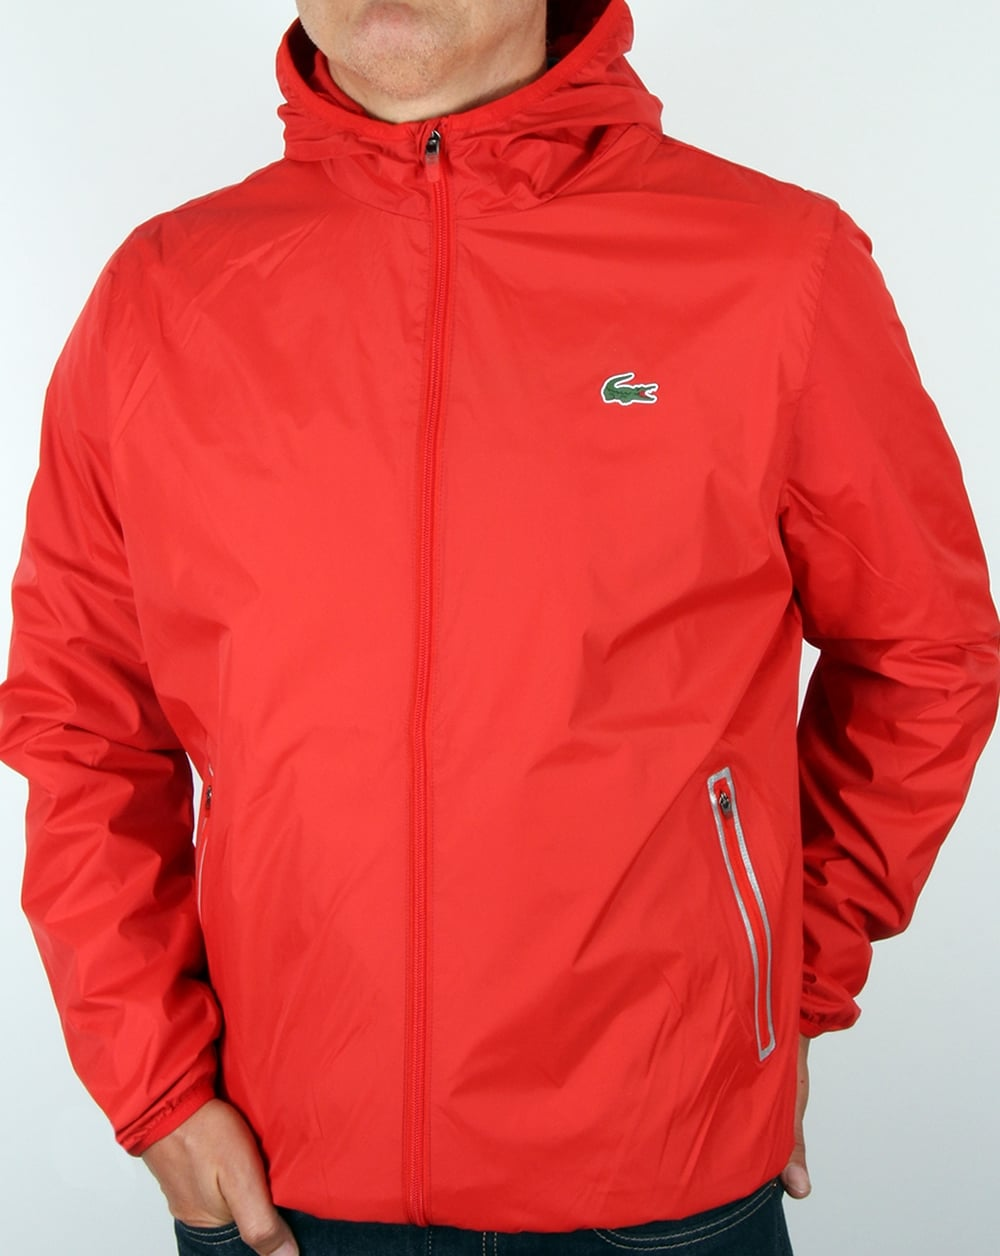 f4d7362971db Lacoste Lacoste Sport Tech Hooded Jacket Corrida Red